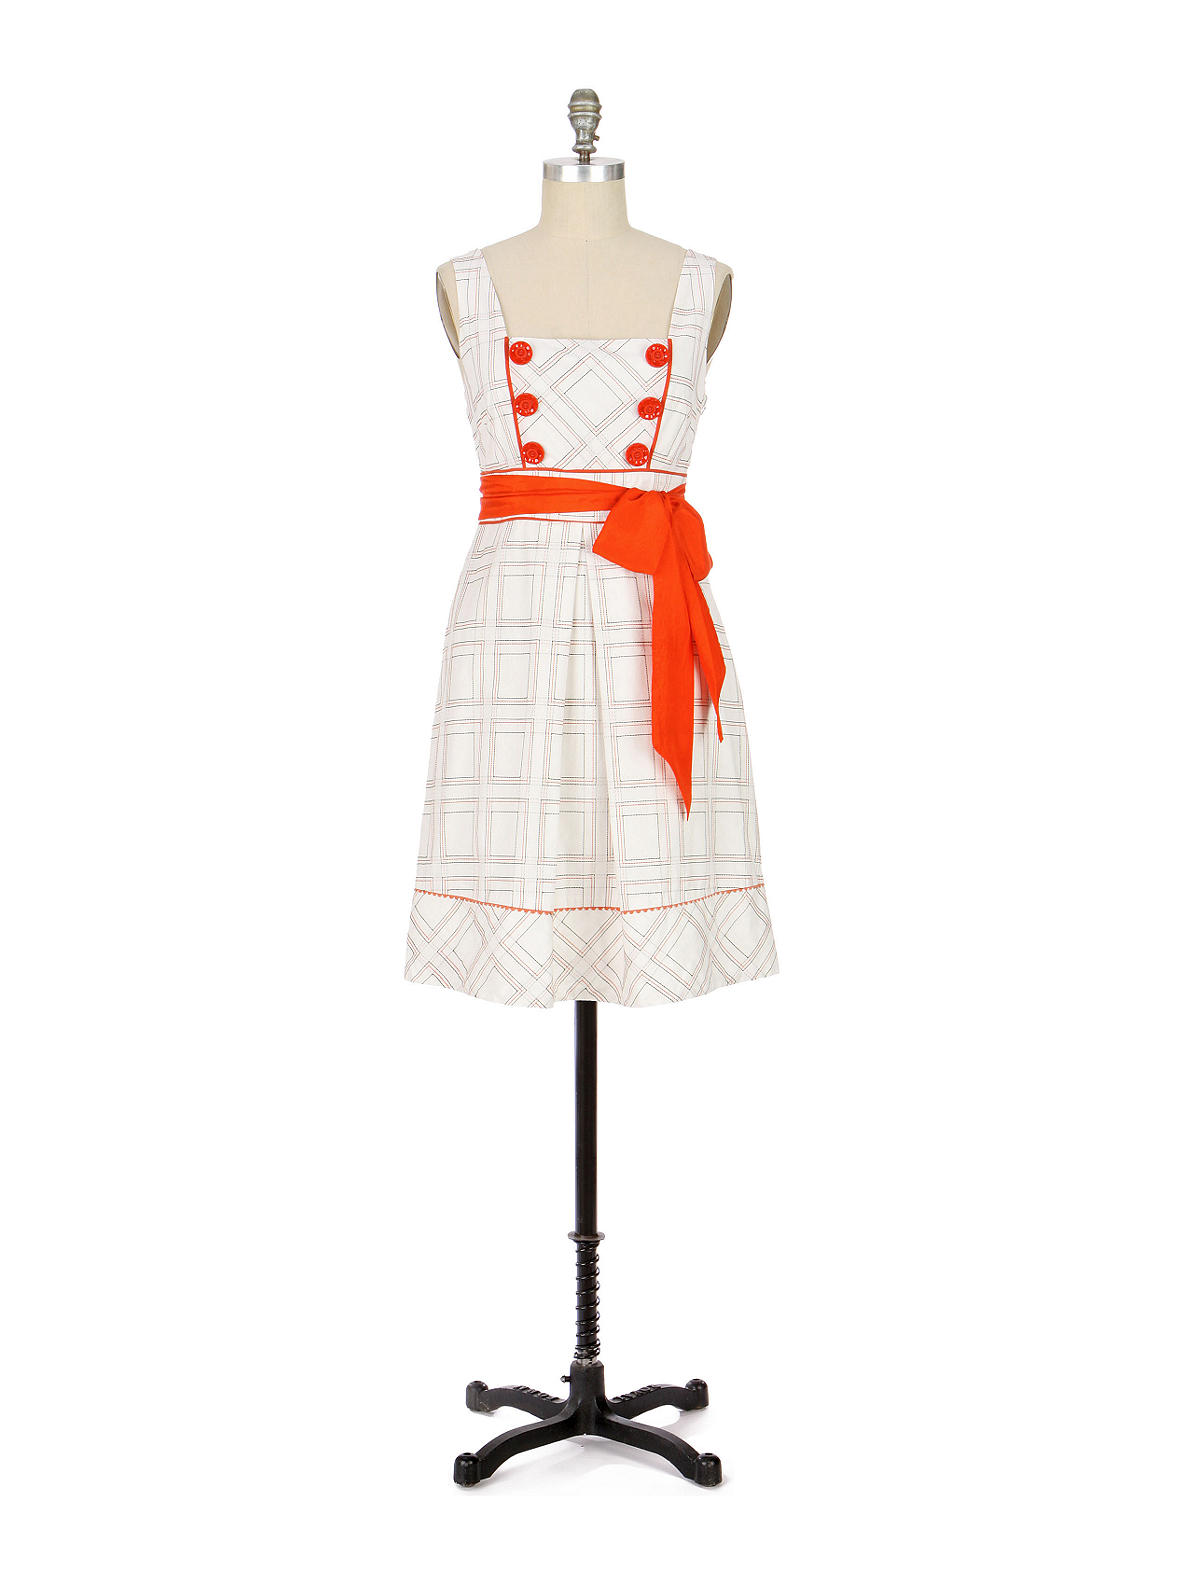 Wight's Sago Dress - Anthropologie.com :  sago wight dress anthropologie